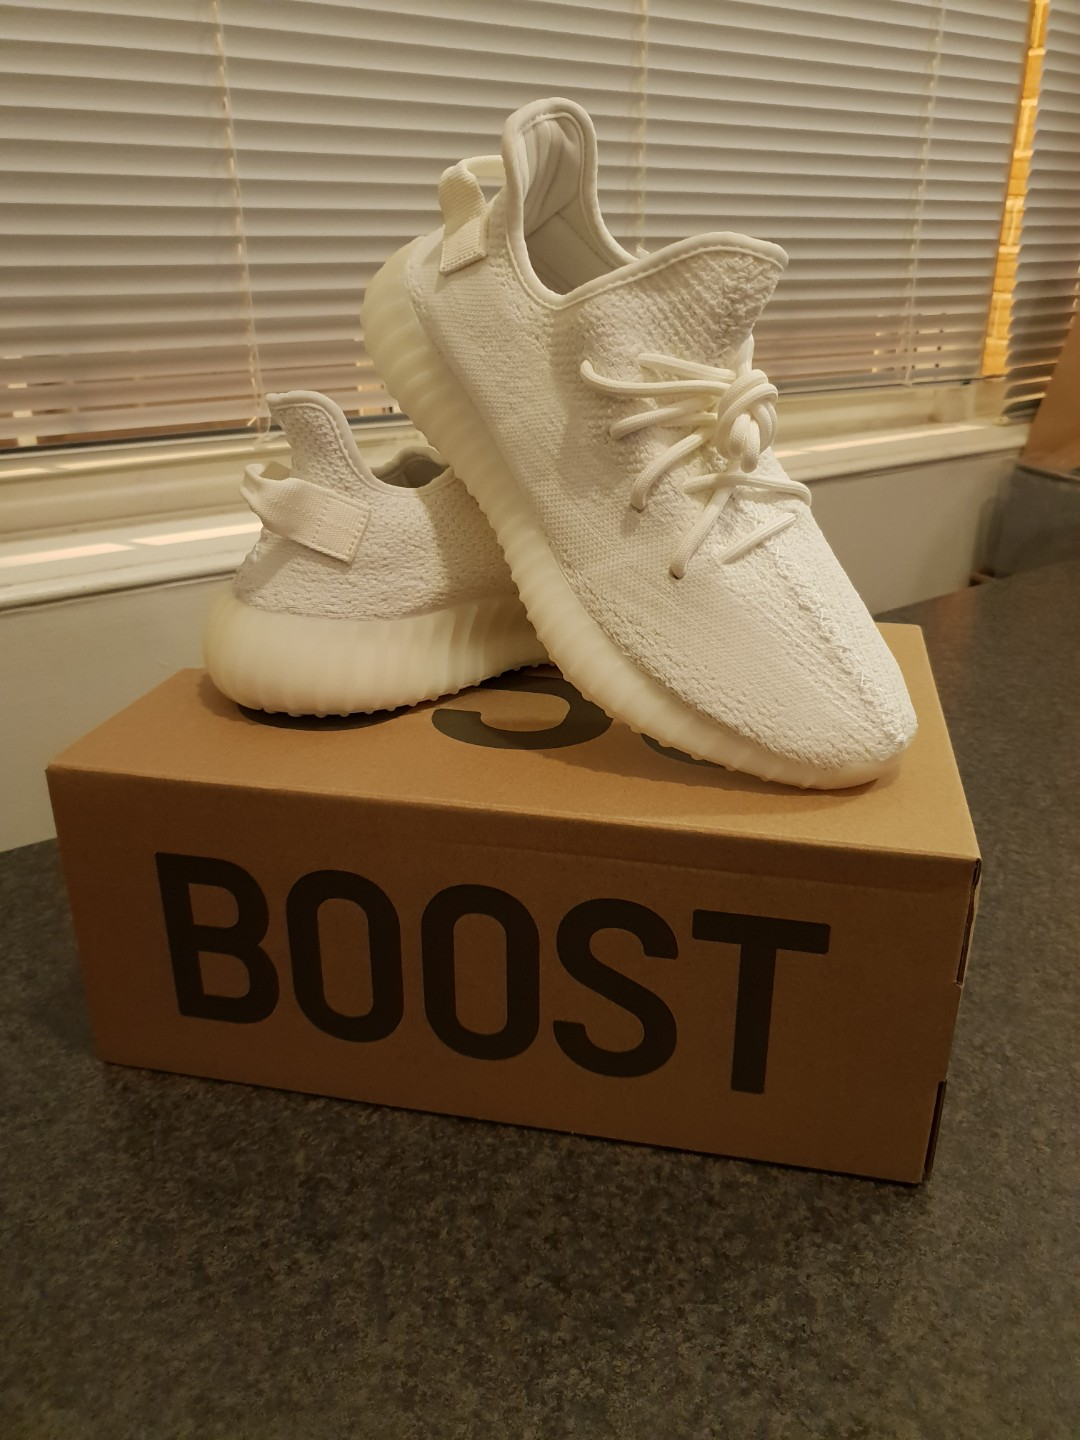 0ebac6206c76b Yeezy Boost 350 V2 Cream White